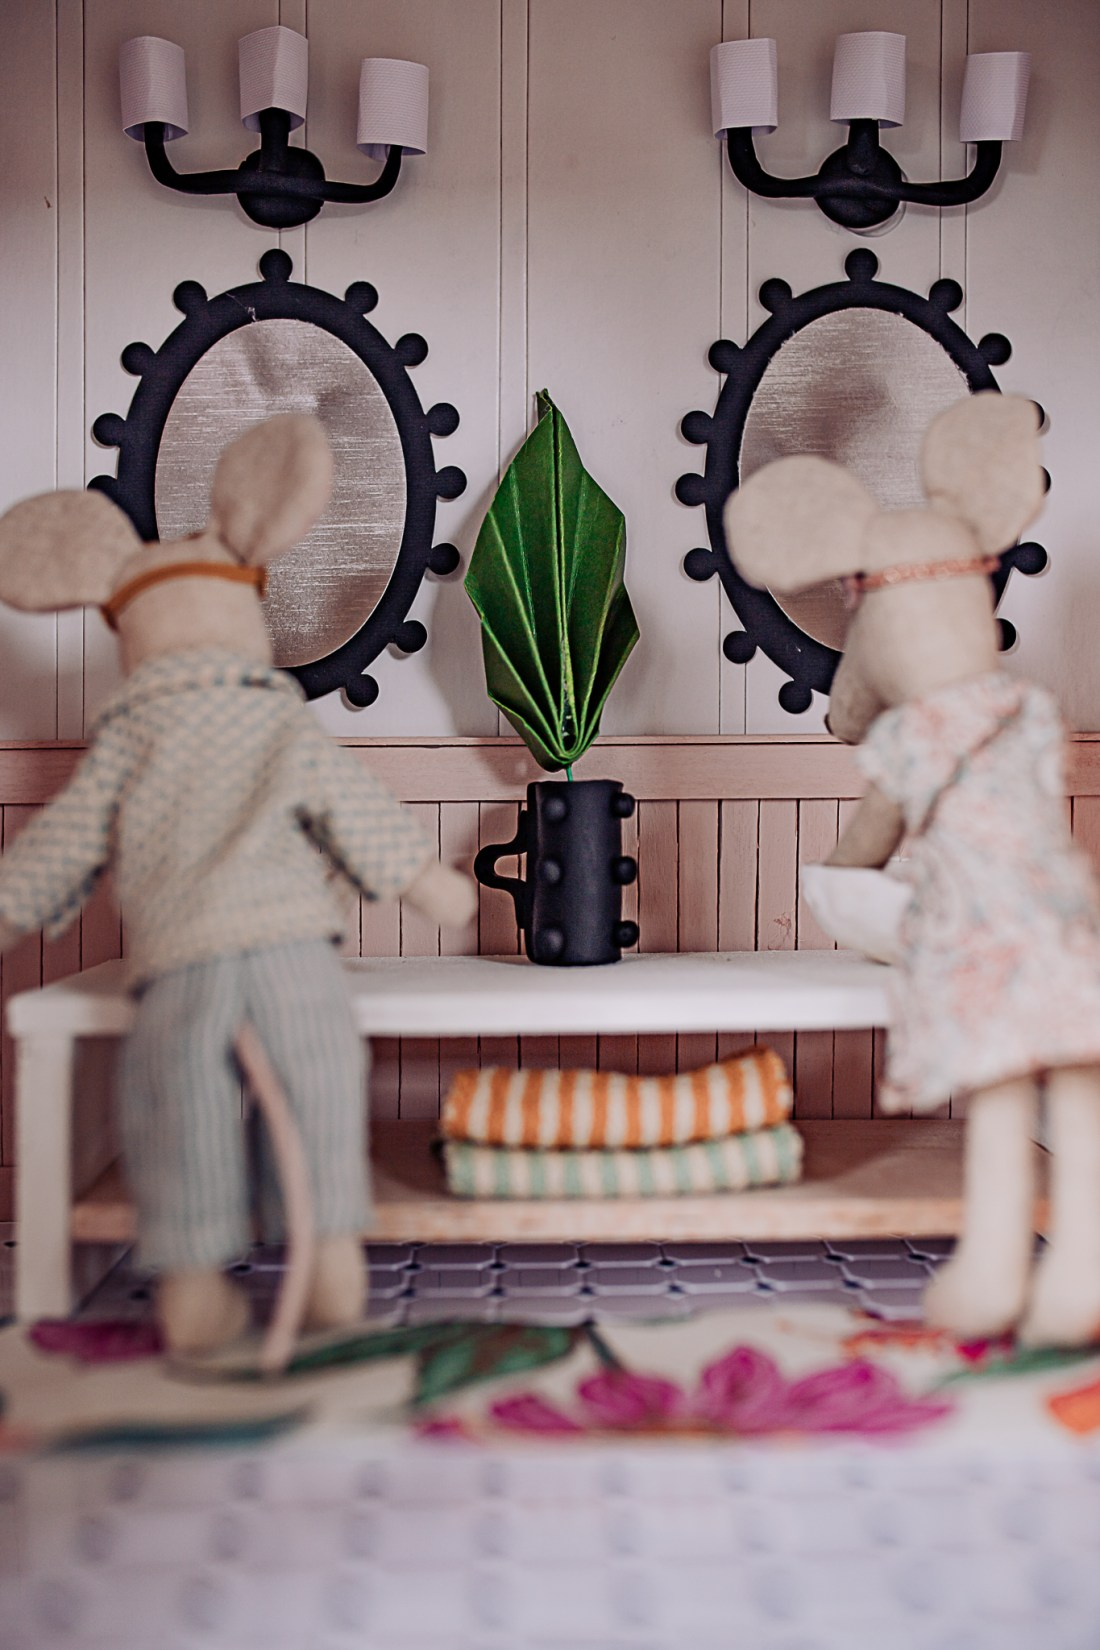 Dollhouse Accessories by popular Nashville life and style blog, Modern Day Moguls: image of two toy mice in a dollhouse bathroom.